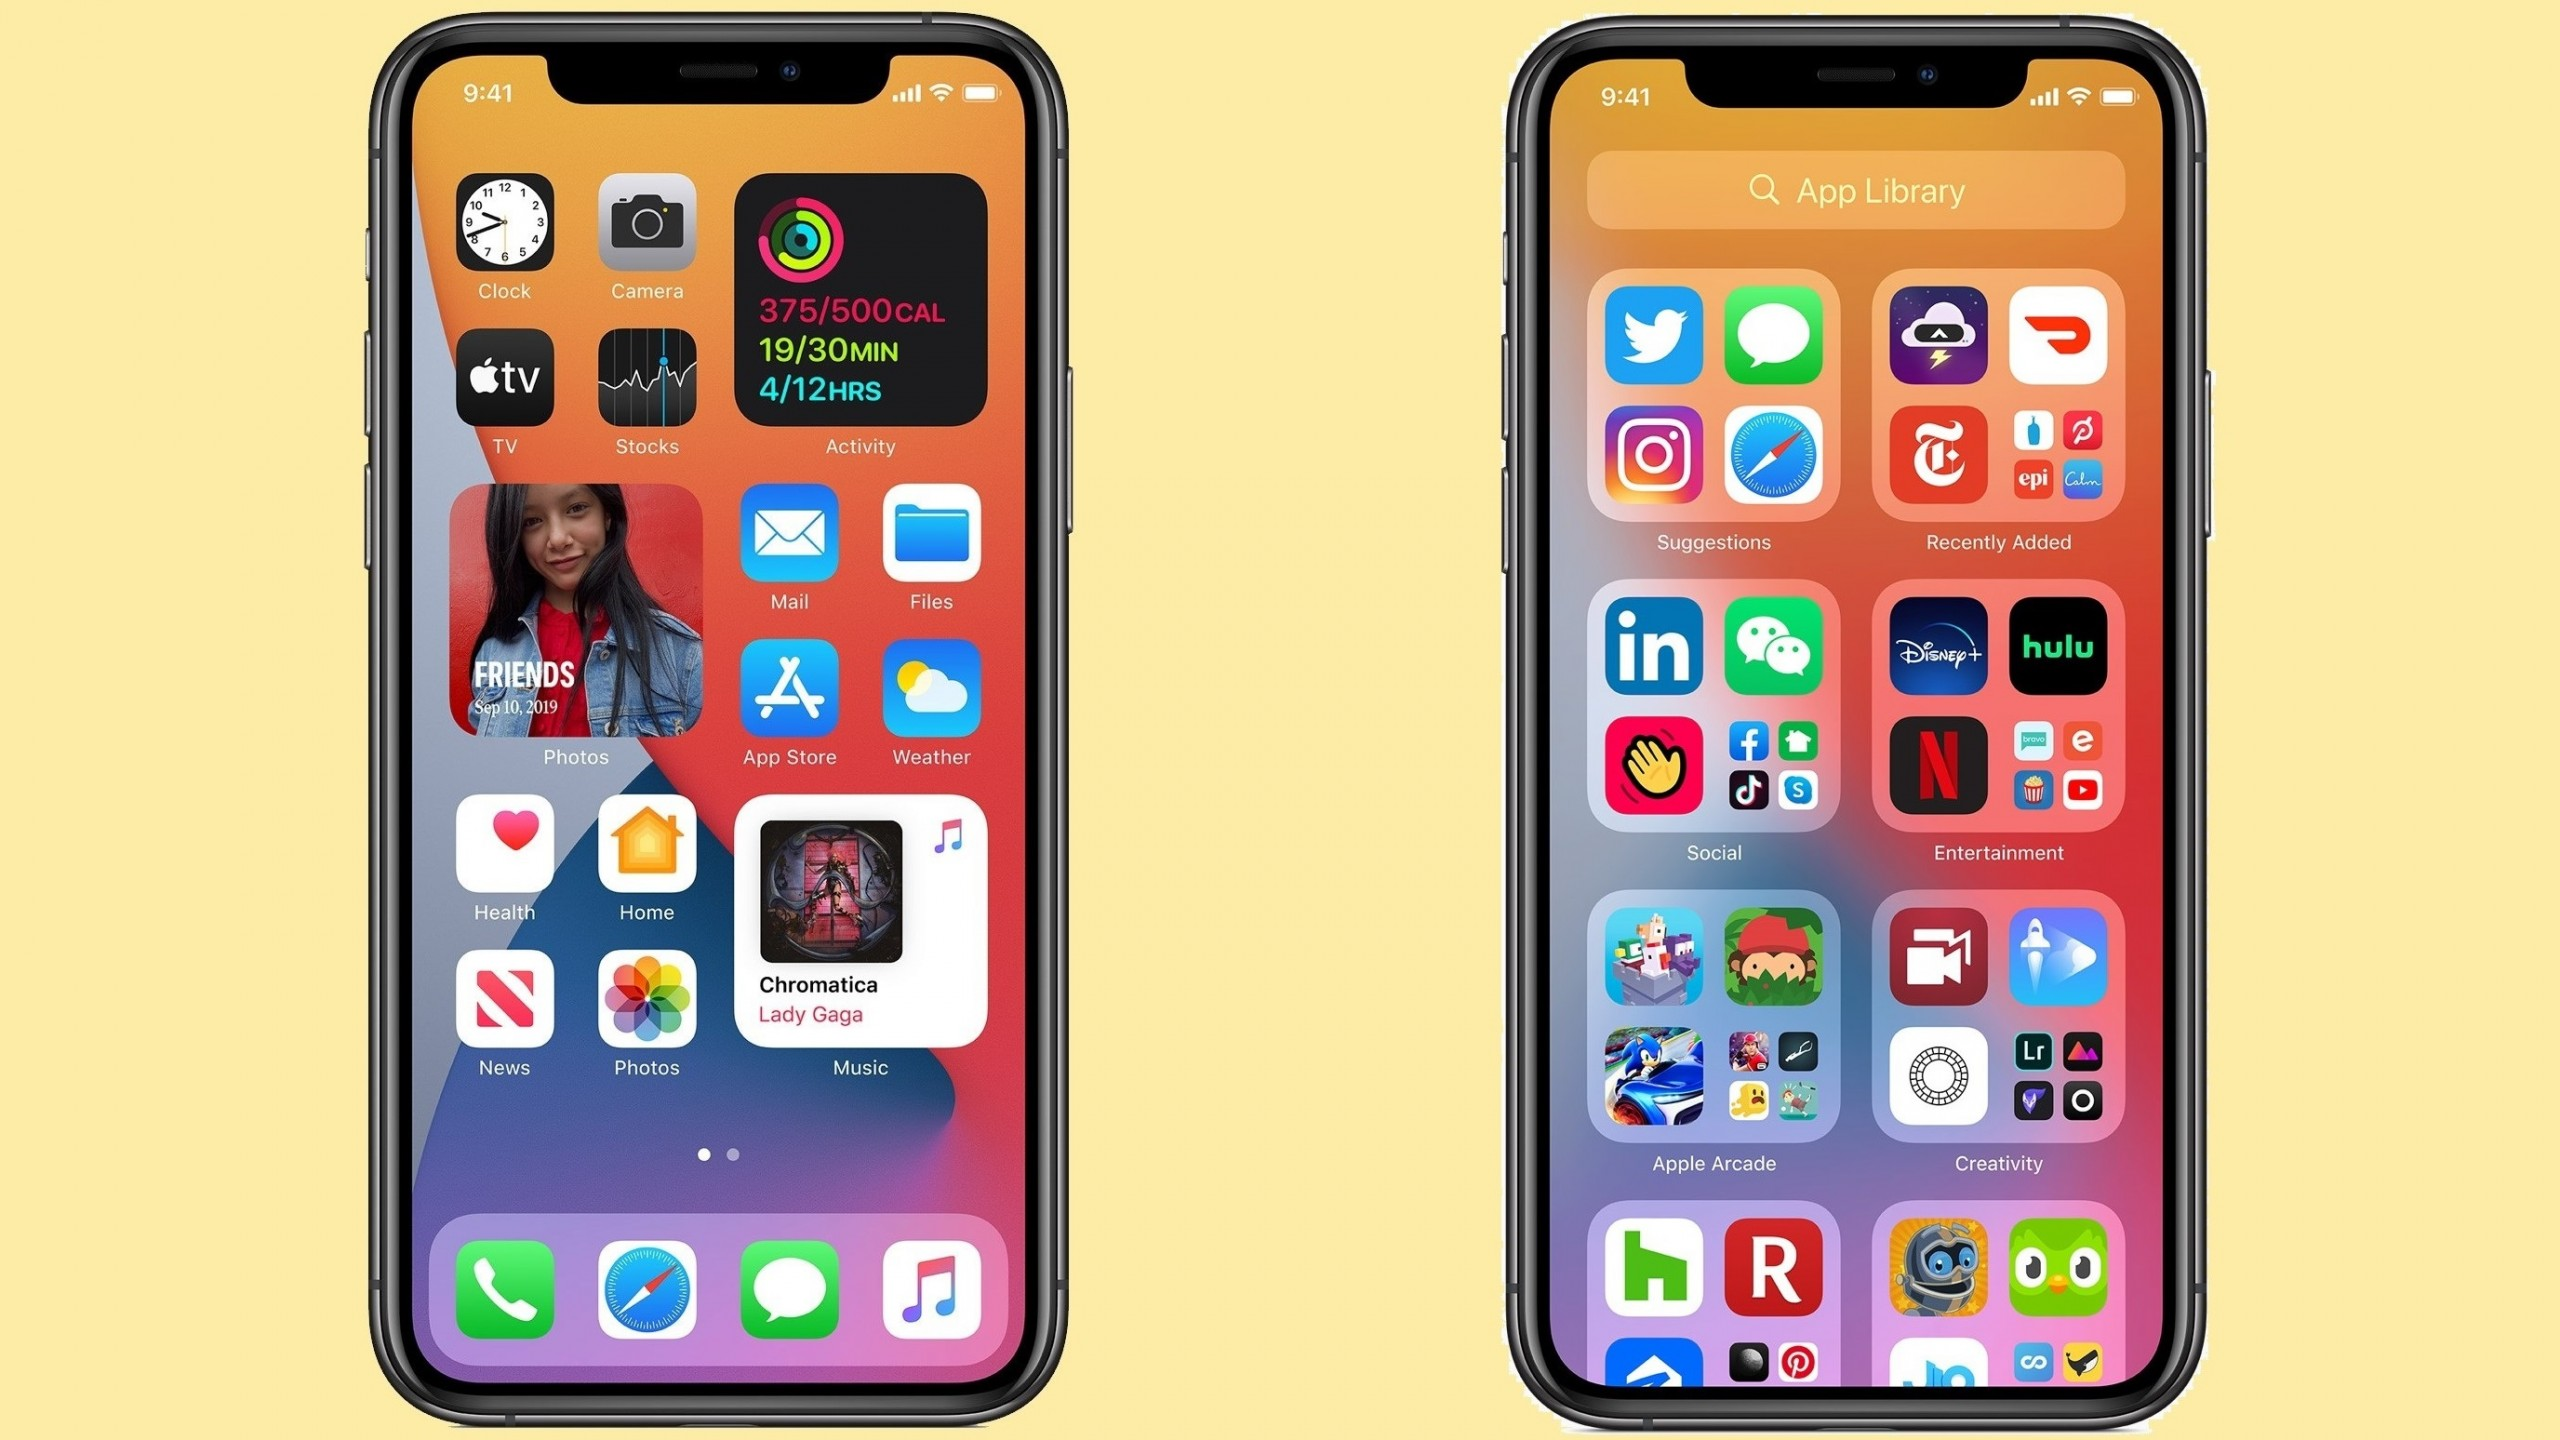 Apple Launches Ios 14 Ipados 14 With Exciting Features Similar To Android